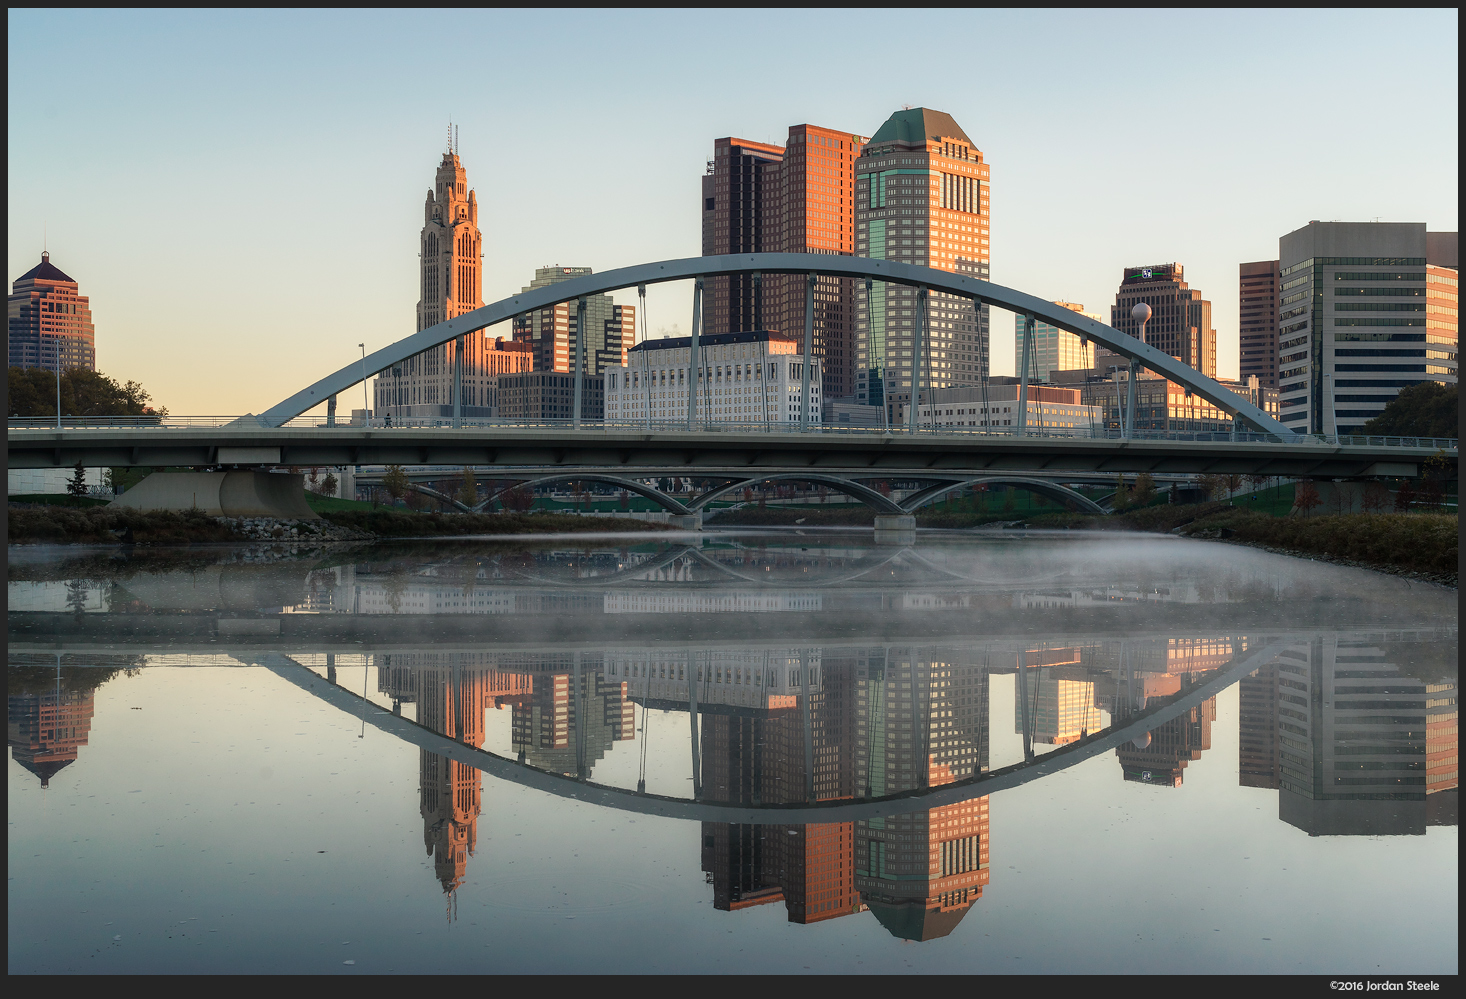 Columbus Reflected - Sony A7 II with Zeiss FE 50mm f/1.4 @ f/8